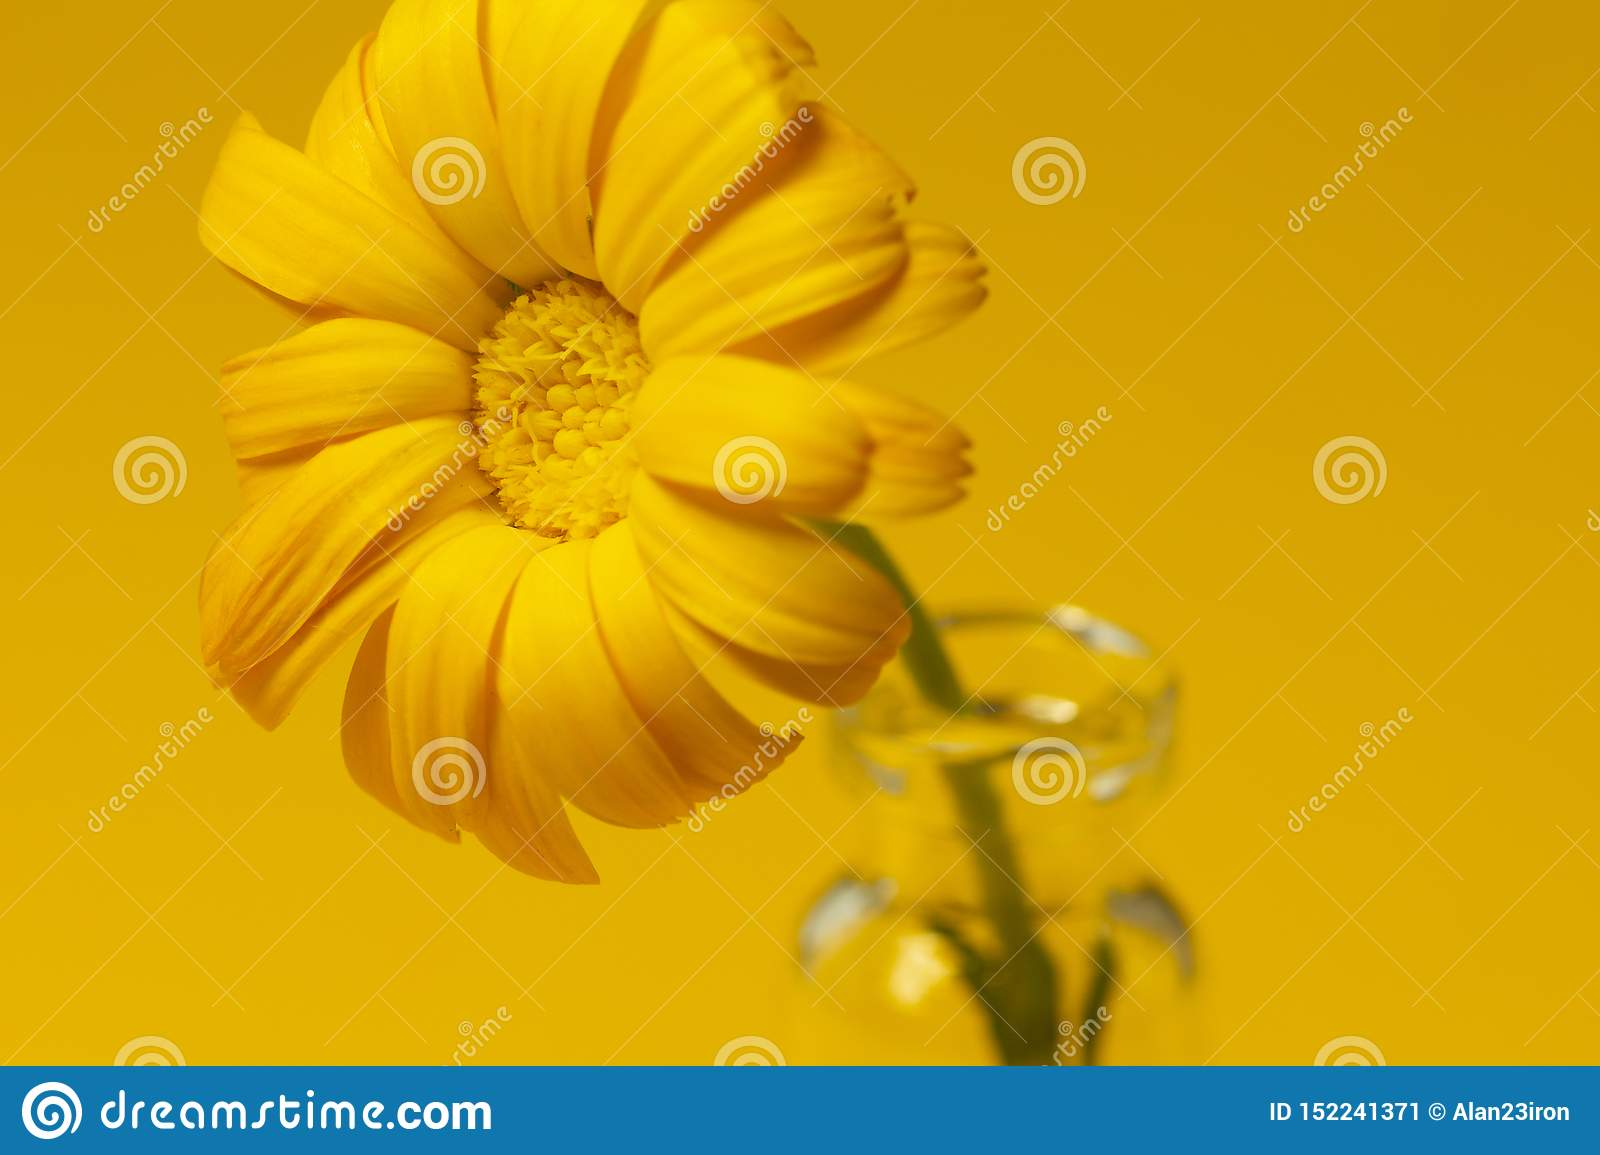 Beautiful calendula flower in glass jar on an yellow background . alternative medicine concept. minimalism style